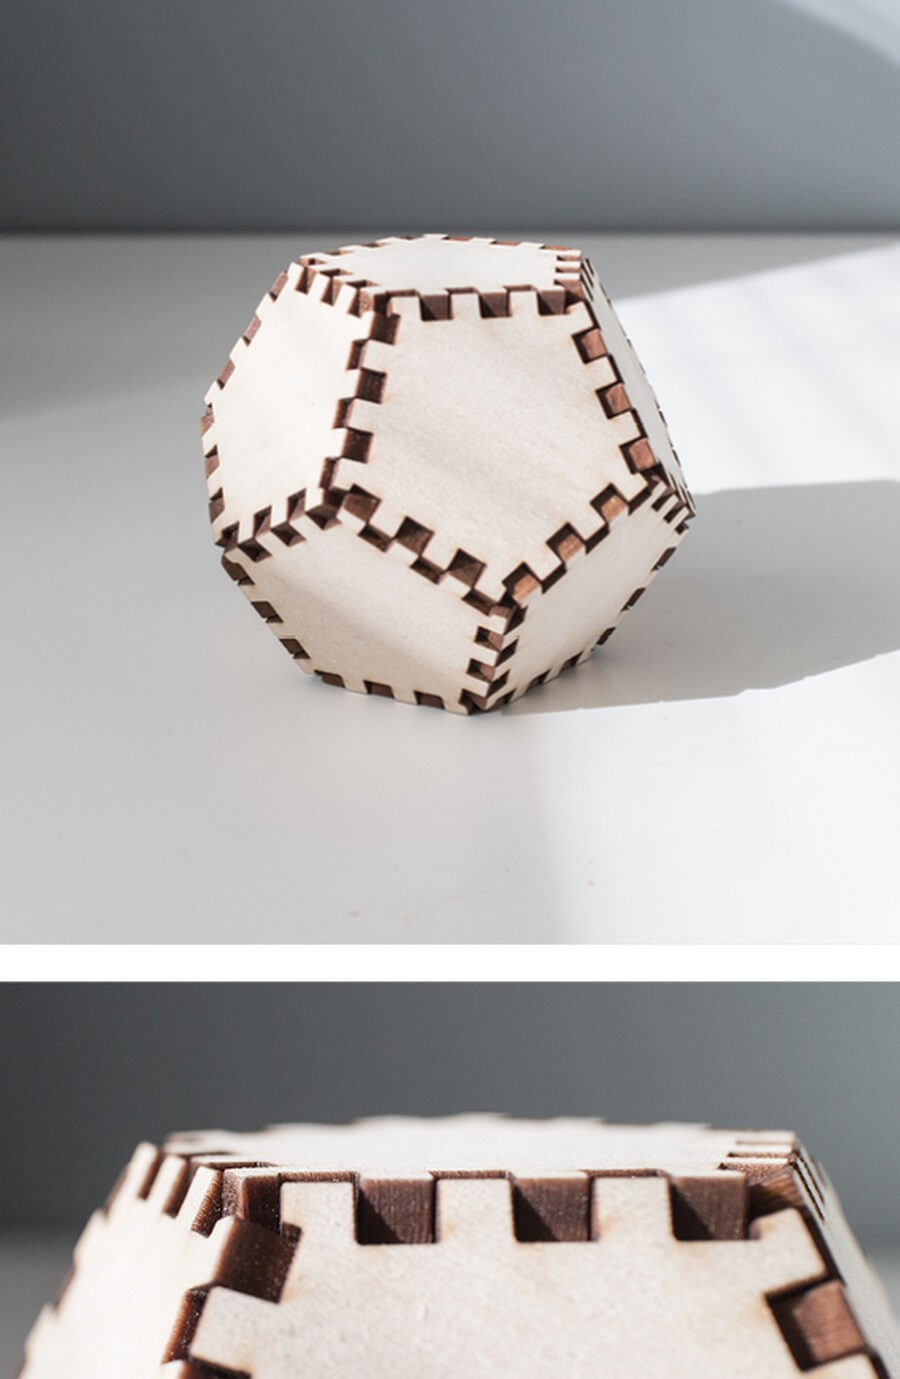 Wooden Joinery #1 - Laser Cutting Designs & Ideas